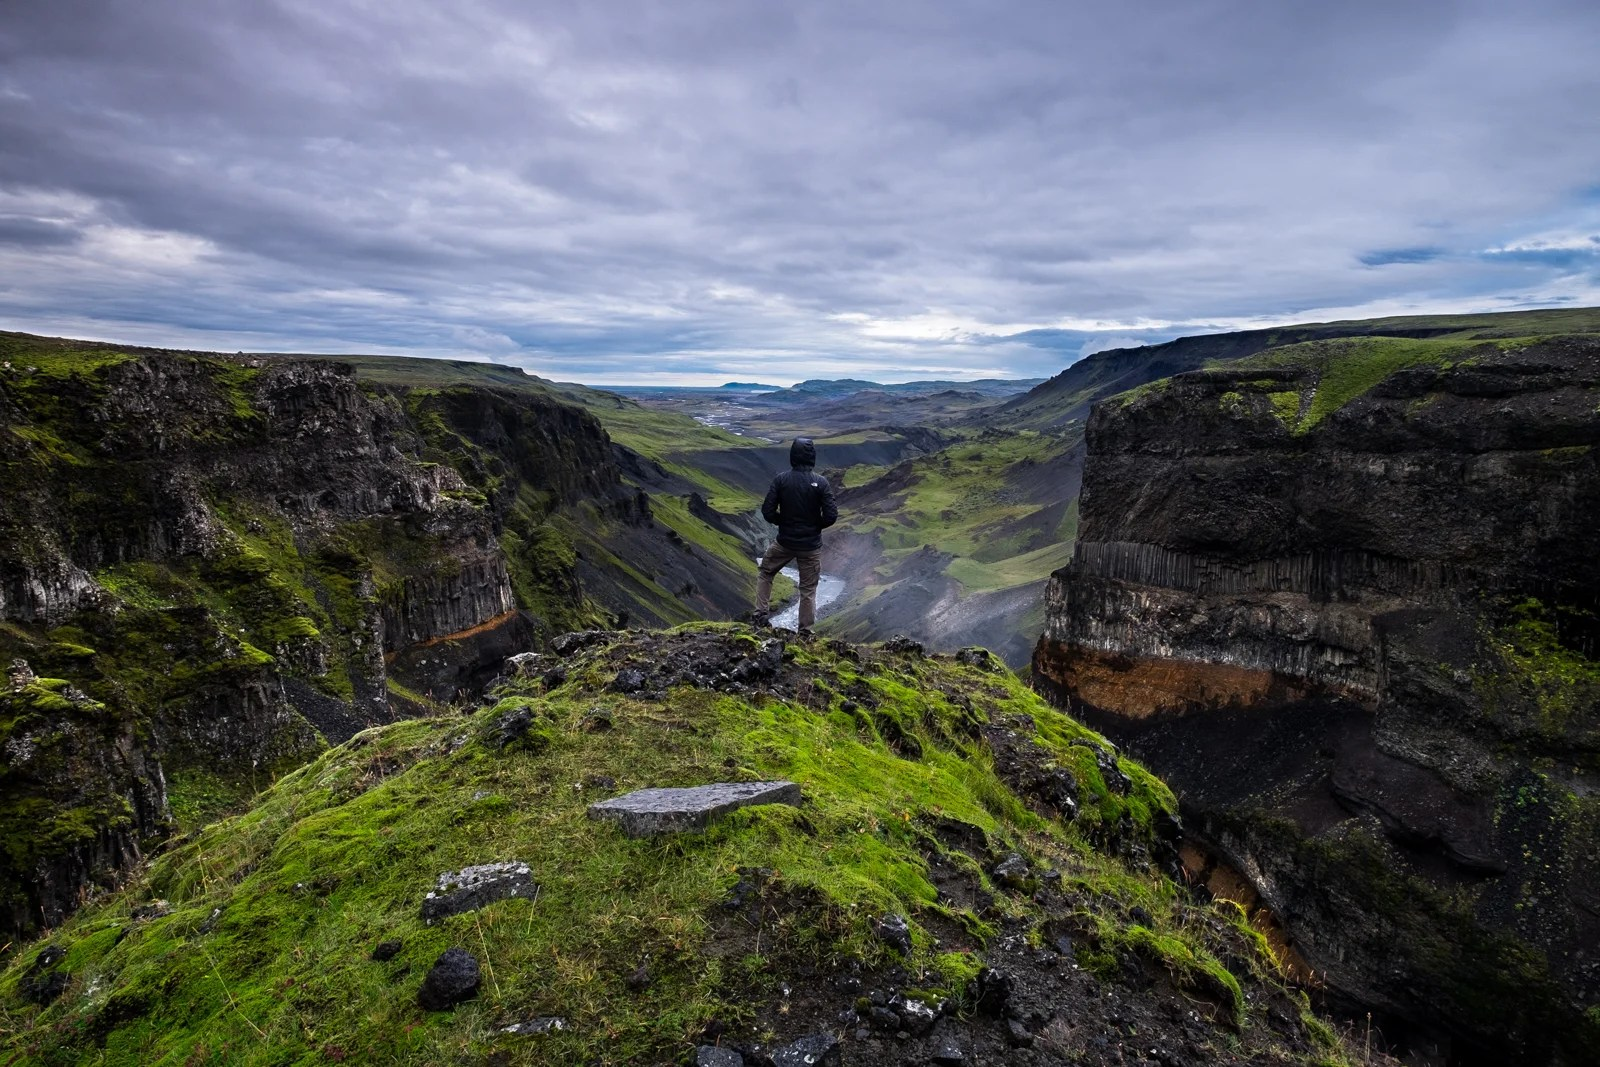 These Are the Best Times to Visit Iceland